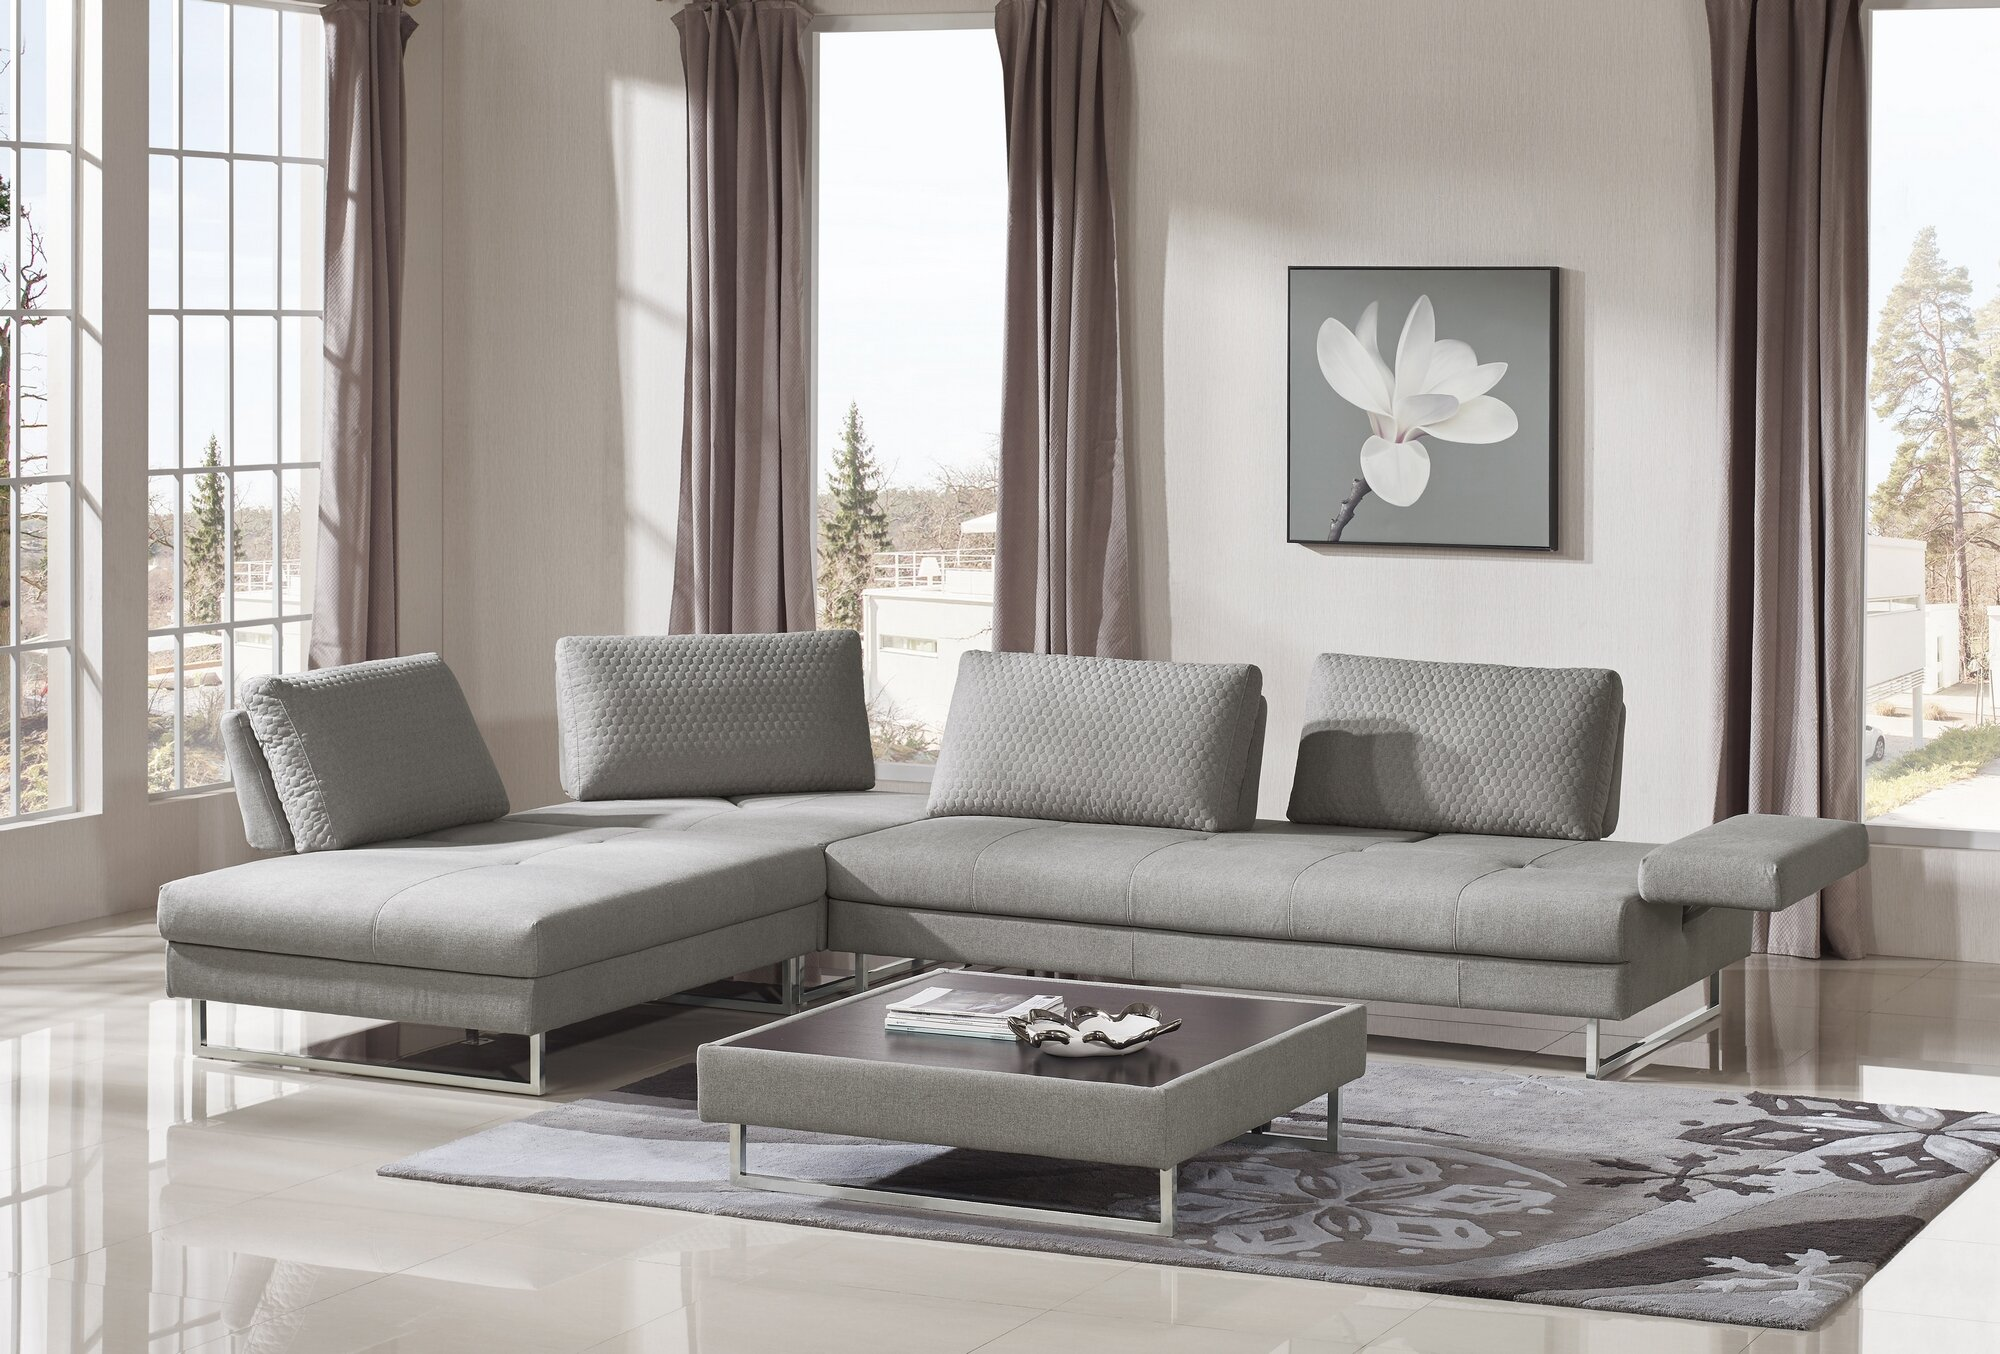 Wensley Modern Fabric Sectional Sofa 4 Piece Living Room Set